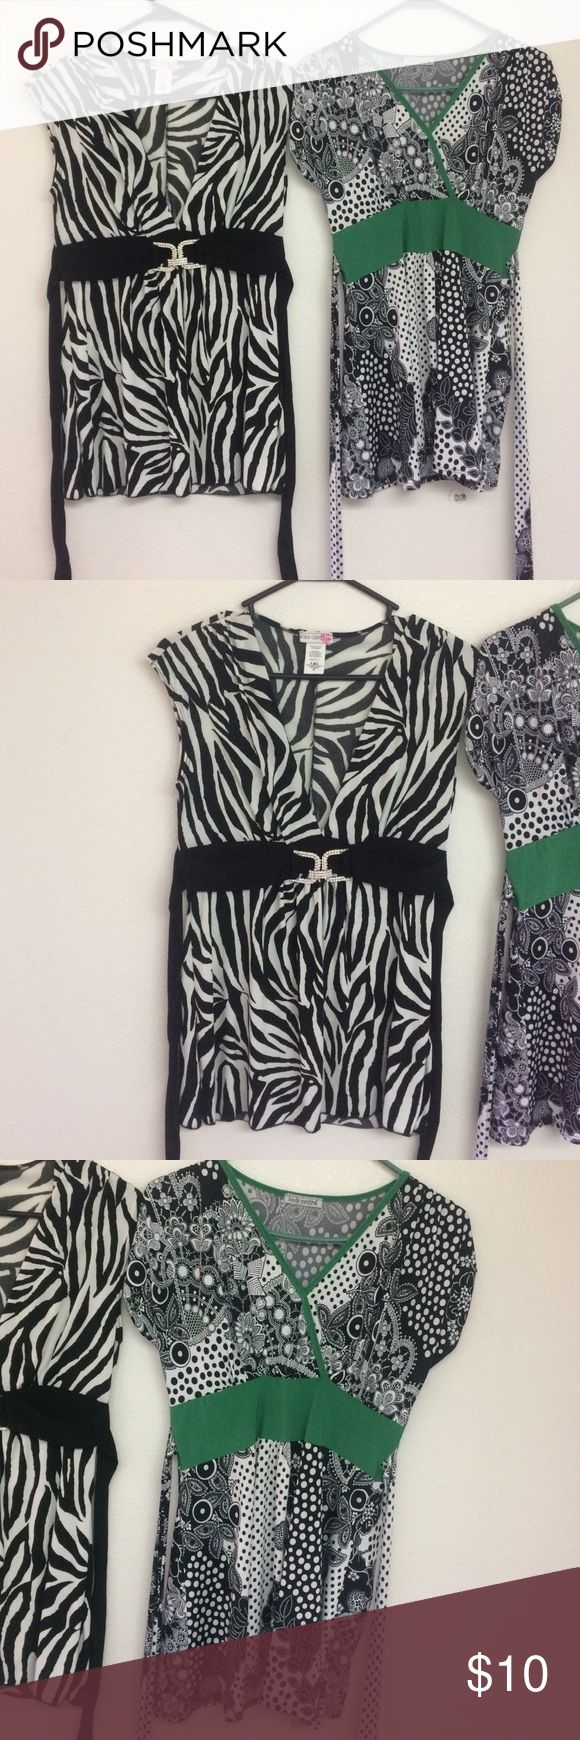 2 Body Central dress blouses Worn only a handful of times and haven't been worn in a while. Both are size medium, 92%polyester 8%spandex. Body Central Tops Blouses